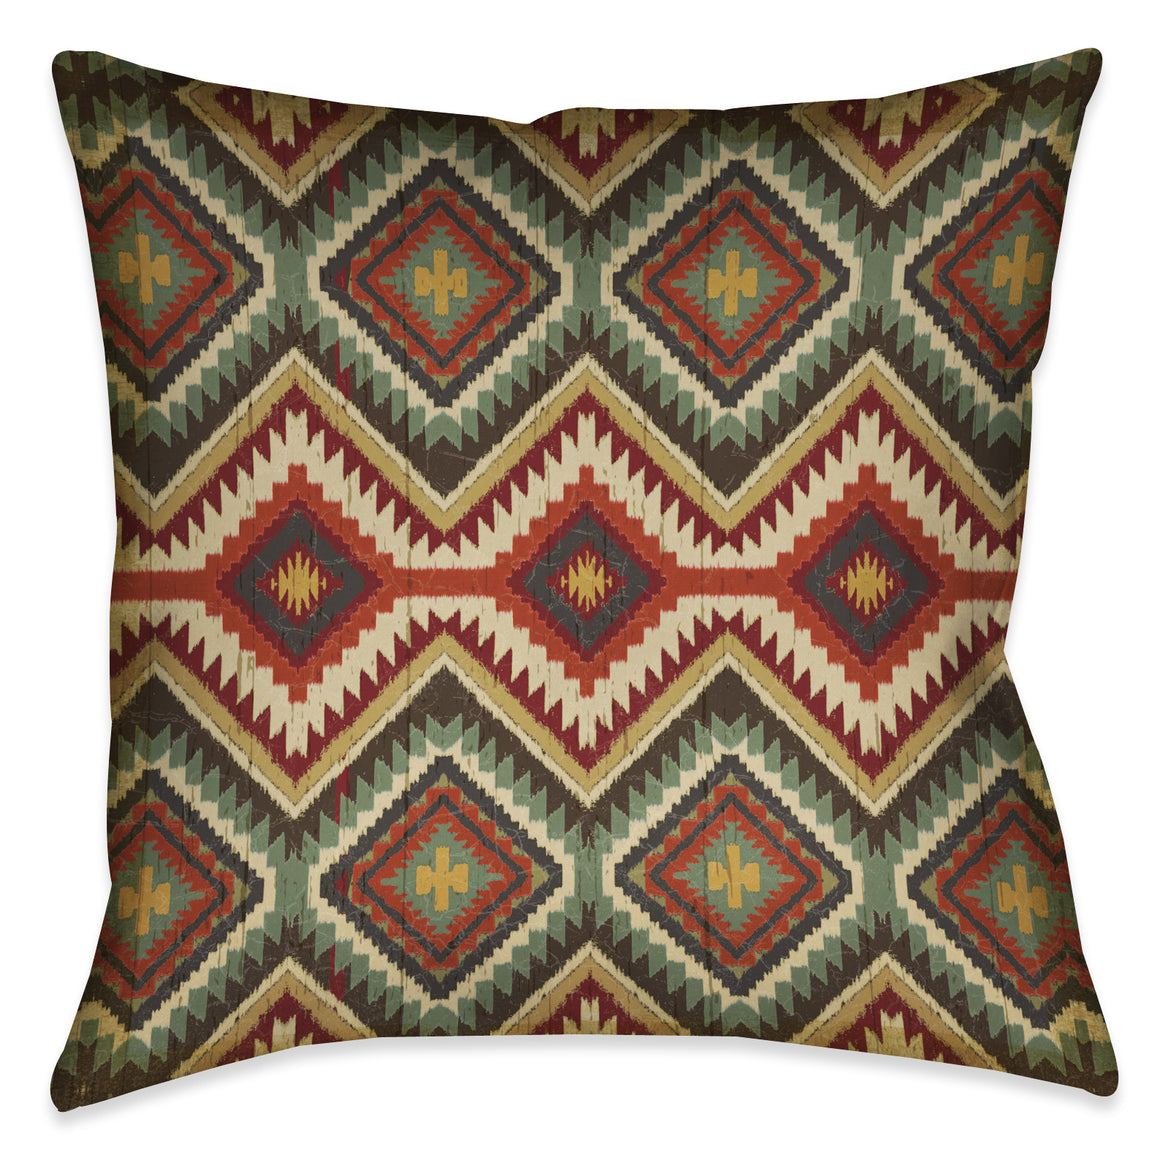 Country Mood II Indoor Decorative Pillow